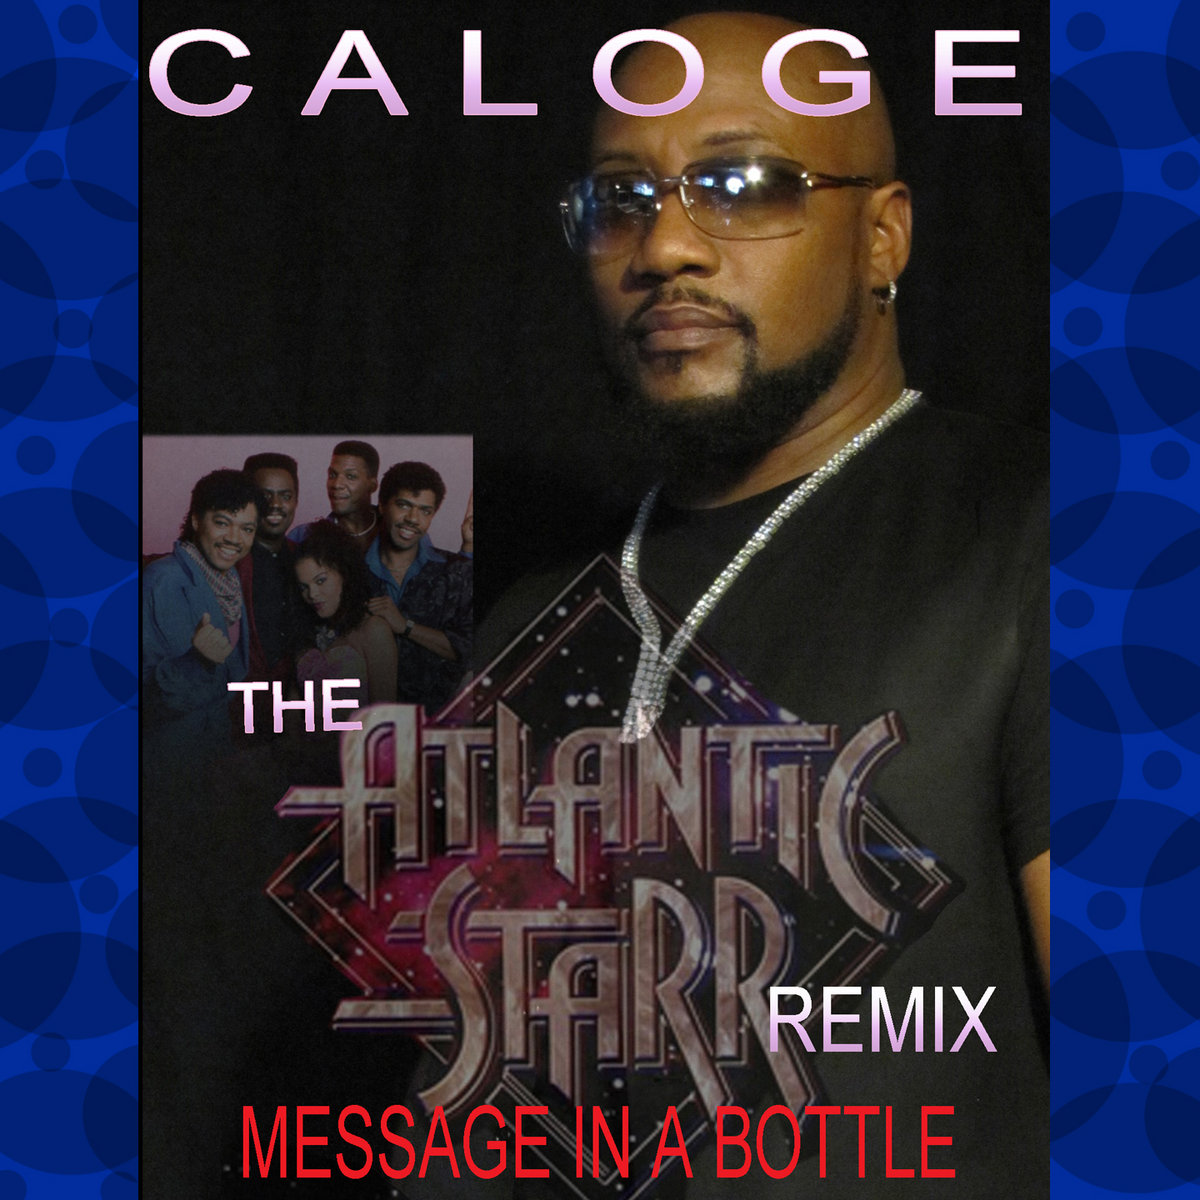 Message In A Bottle - Caloge The Windshifter by Caloge & Tonya Ni